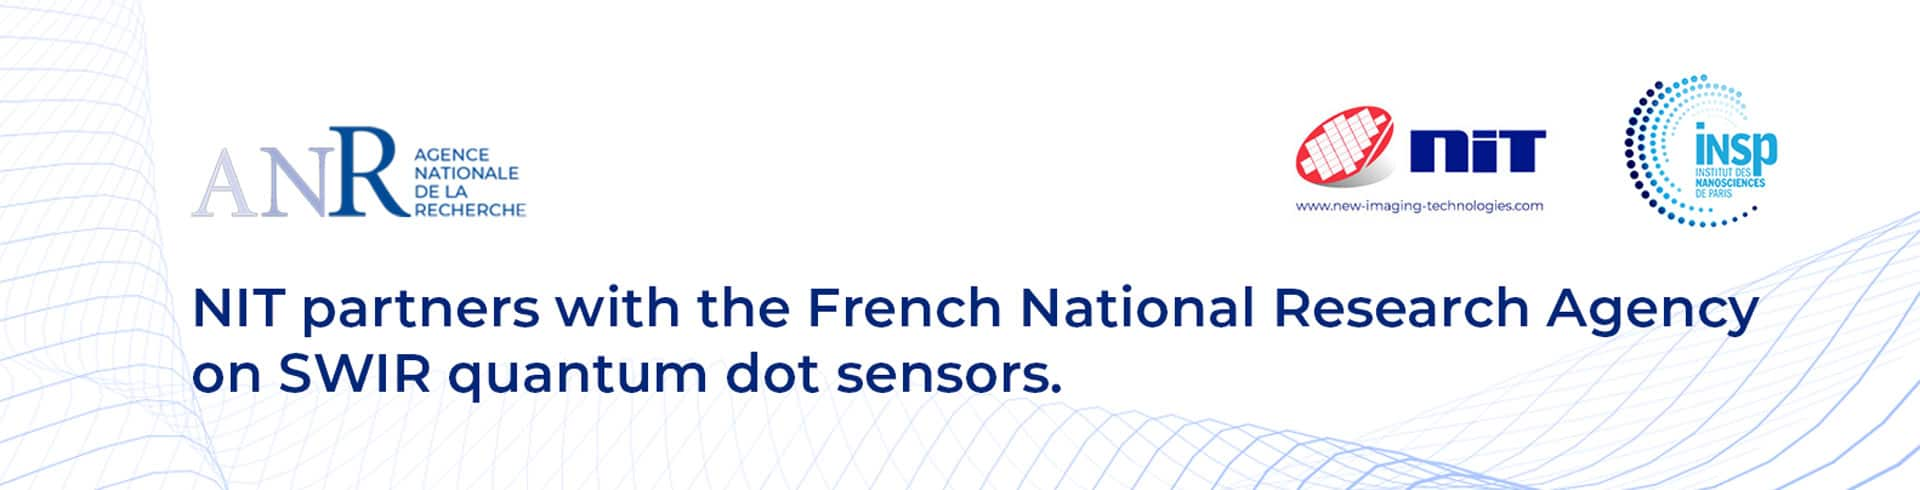 NIT partners with the French National Research Agency on SWIR quantum dot sensors.